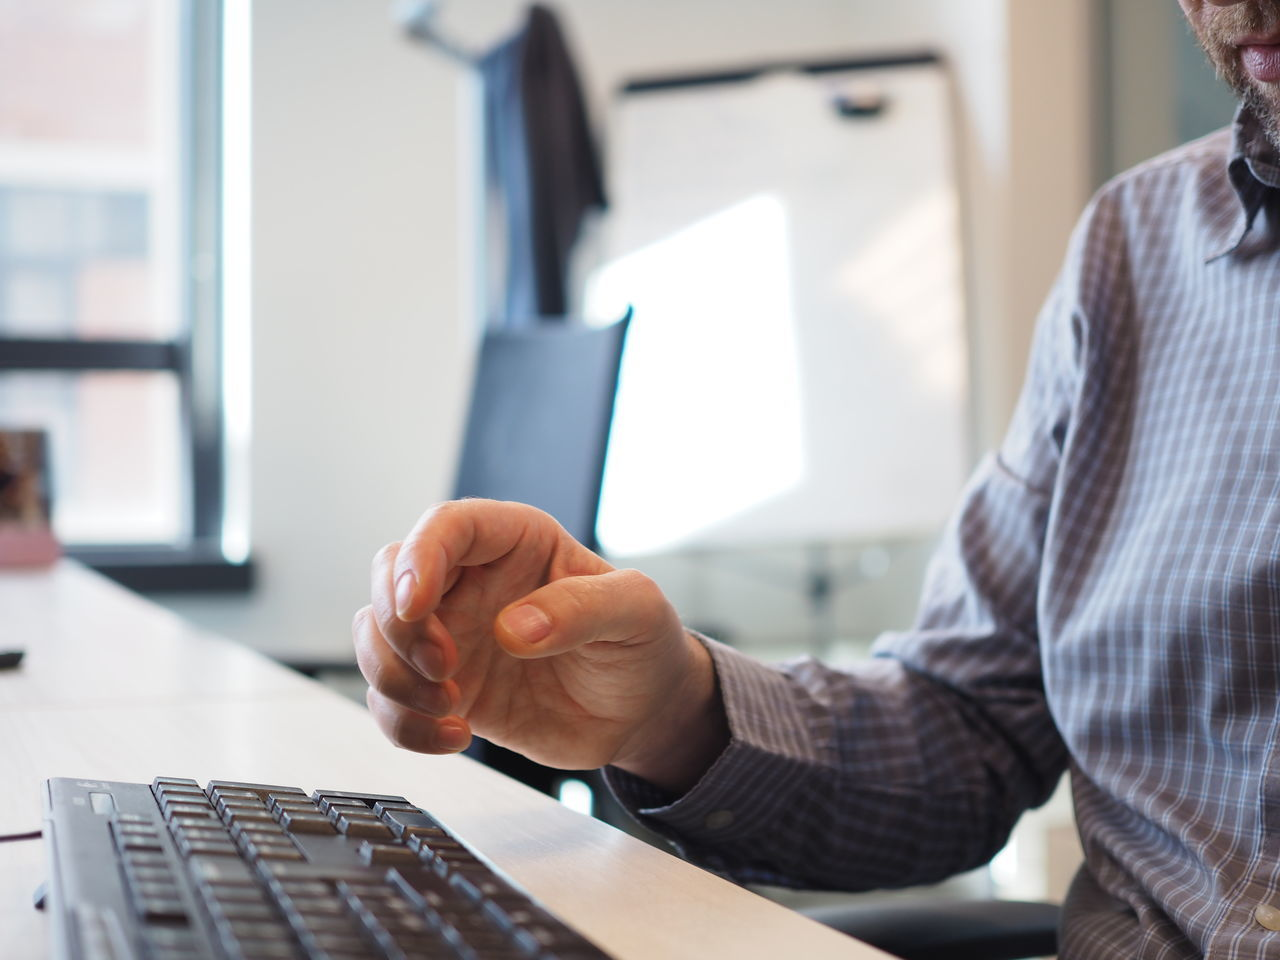 Business Business Person Businessman Communication Computer Keyboard Human Hand Keyboard Man Monitor Occupation Office Office Office View Officeman One Person Shirt Shirt Man Technology Typing Using Computer White Collar Worker Work Work Man Working Employed